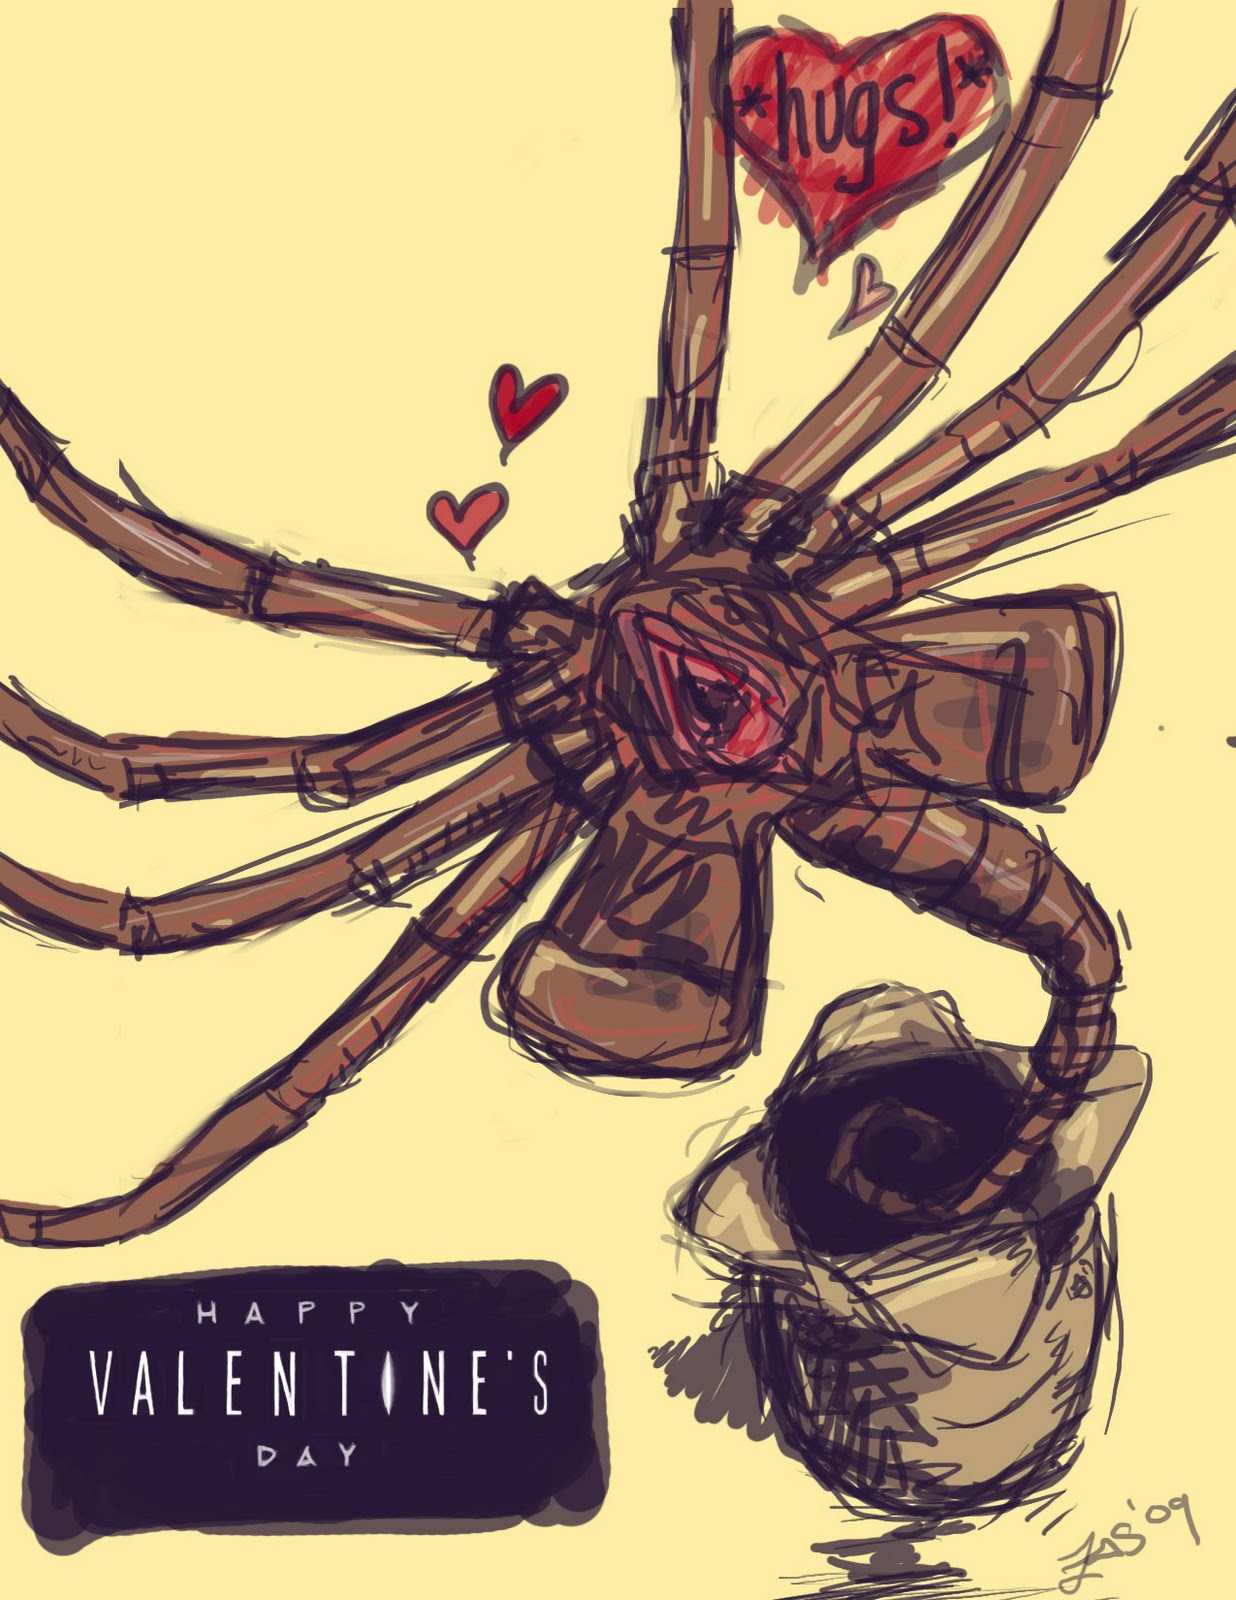 The Spooky Vegan Horror Themed Valentine Day Cards